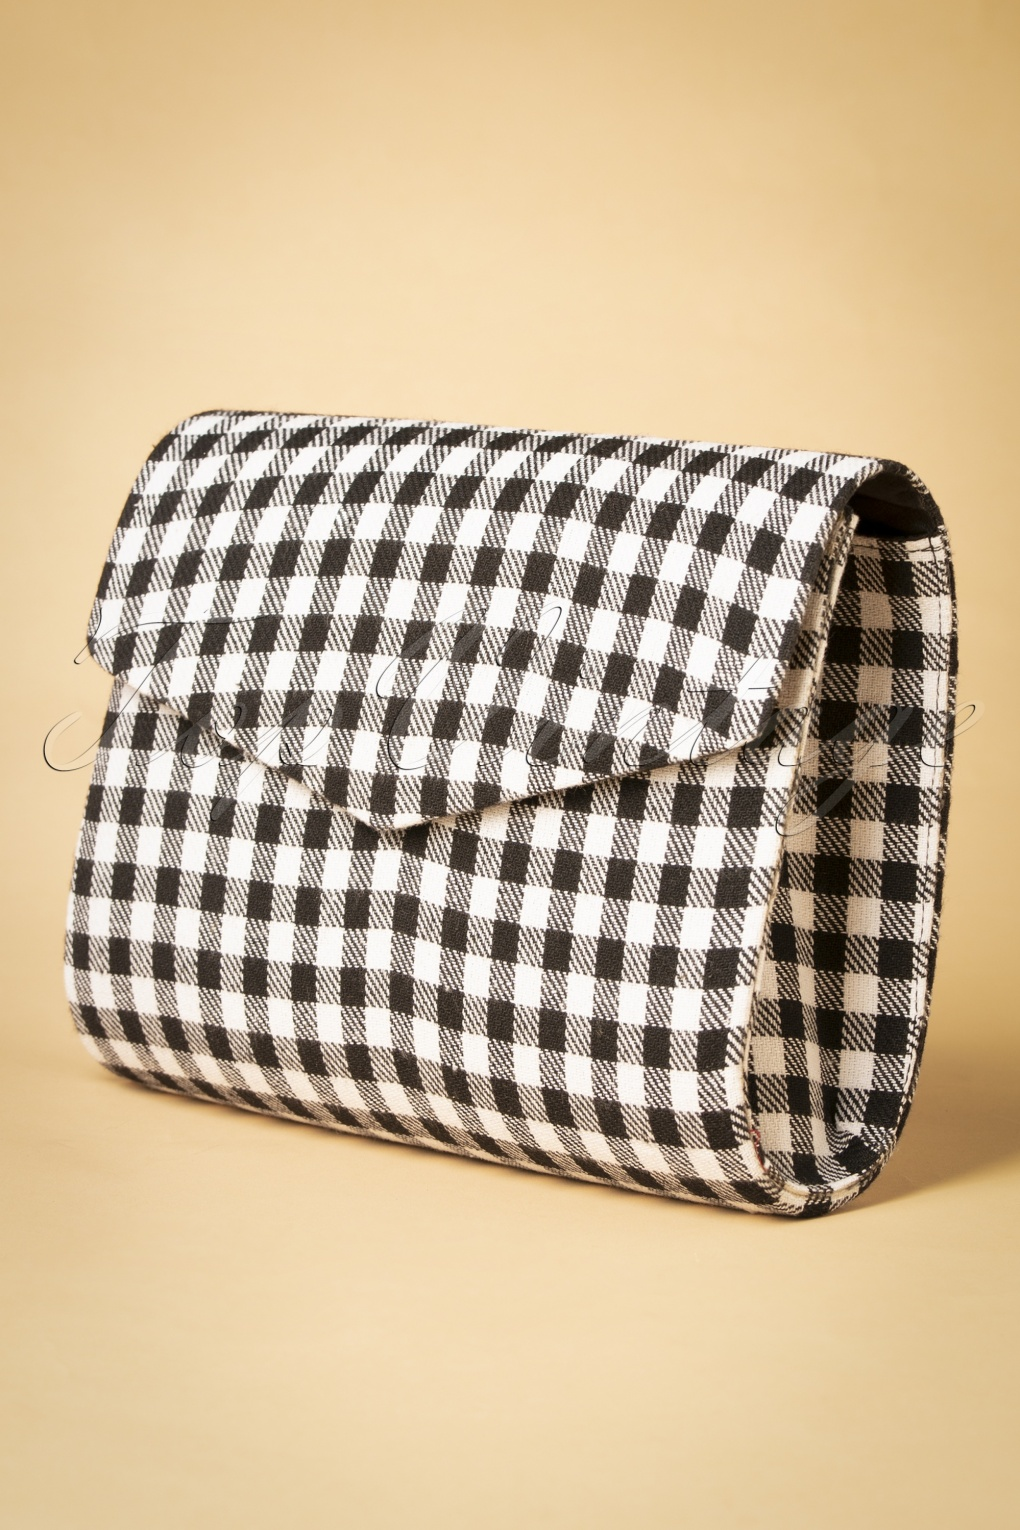 1950s Handbags, Purses, and Evening Bag Styles 50s Eria Checks Bag in Black and White £18.88 AT vintagedancer.com